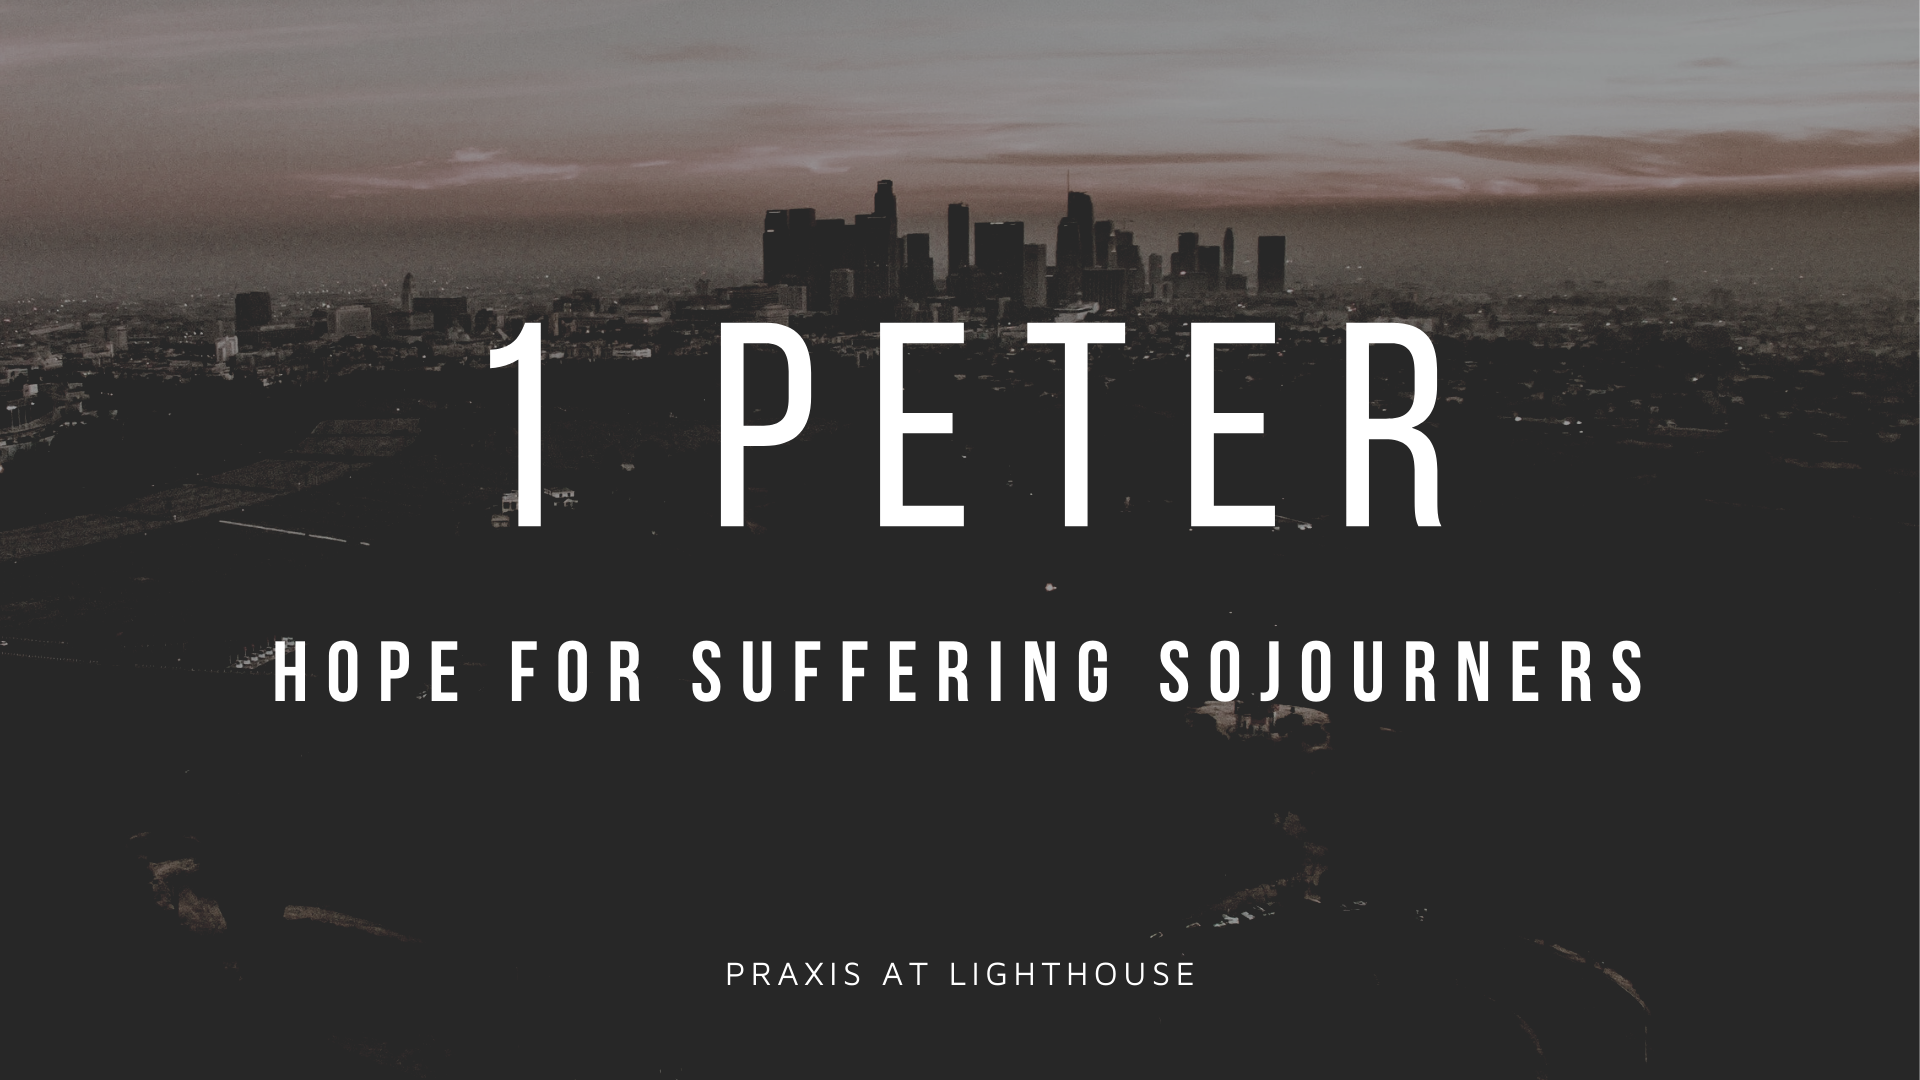 The Response of Suffering Sojourners (1 Peter 1:13-21)